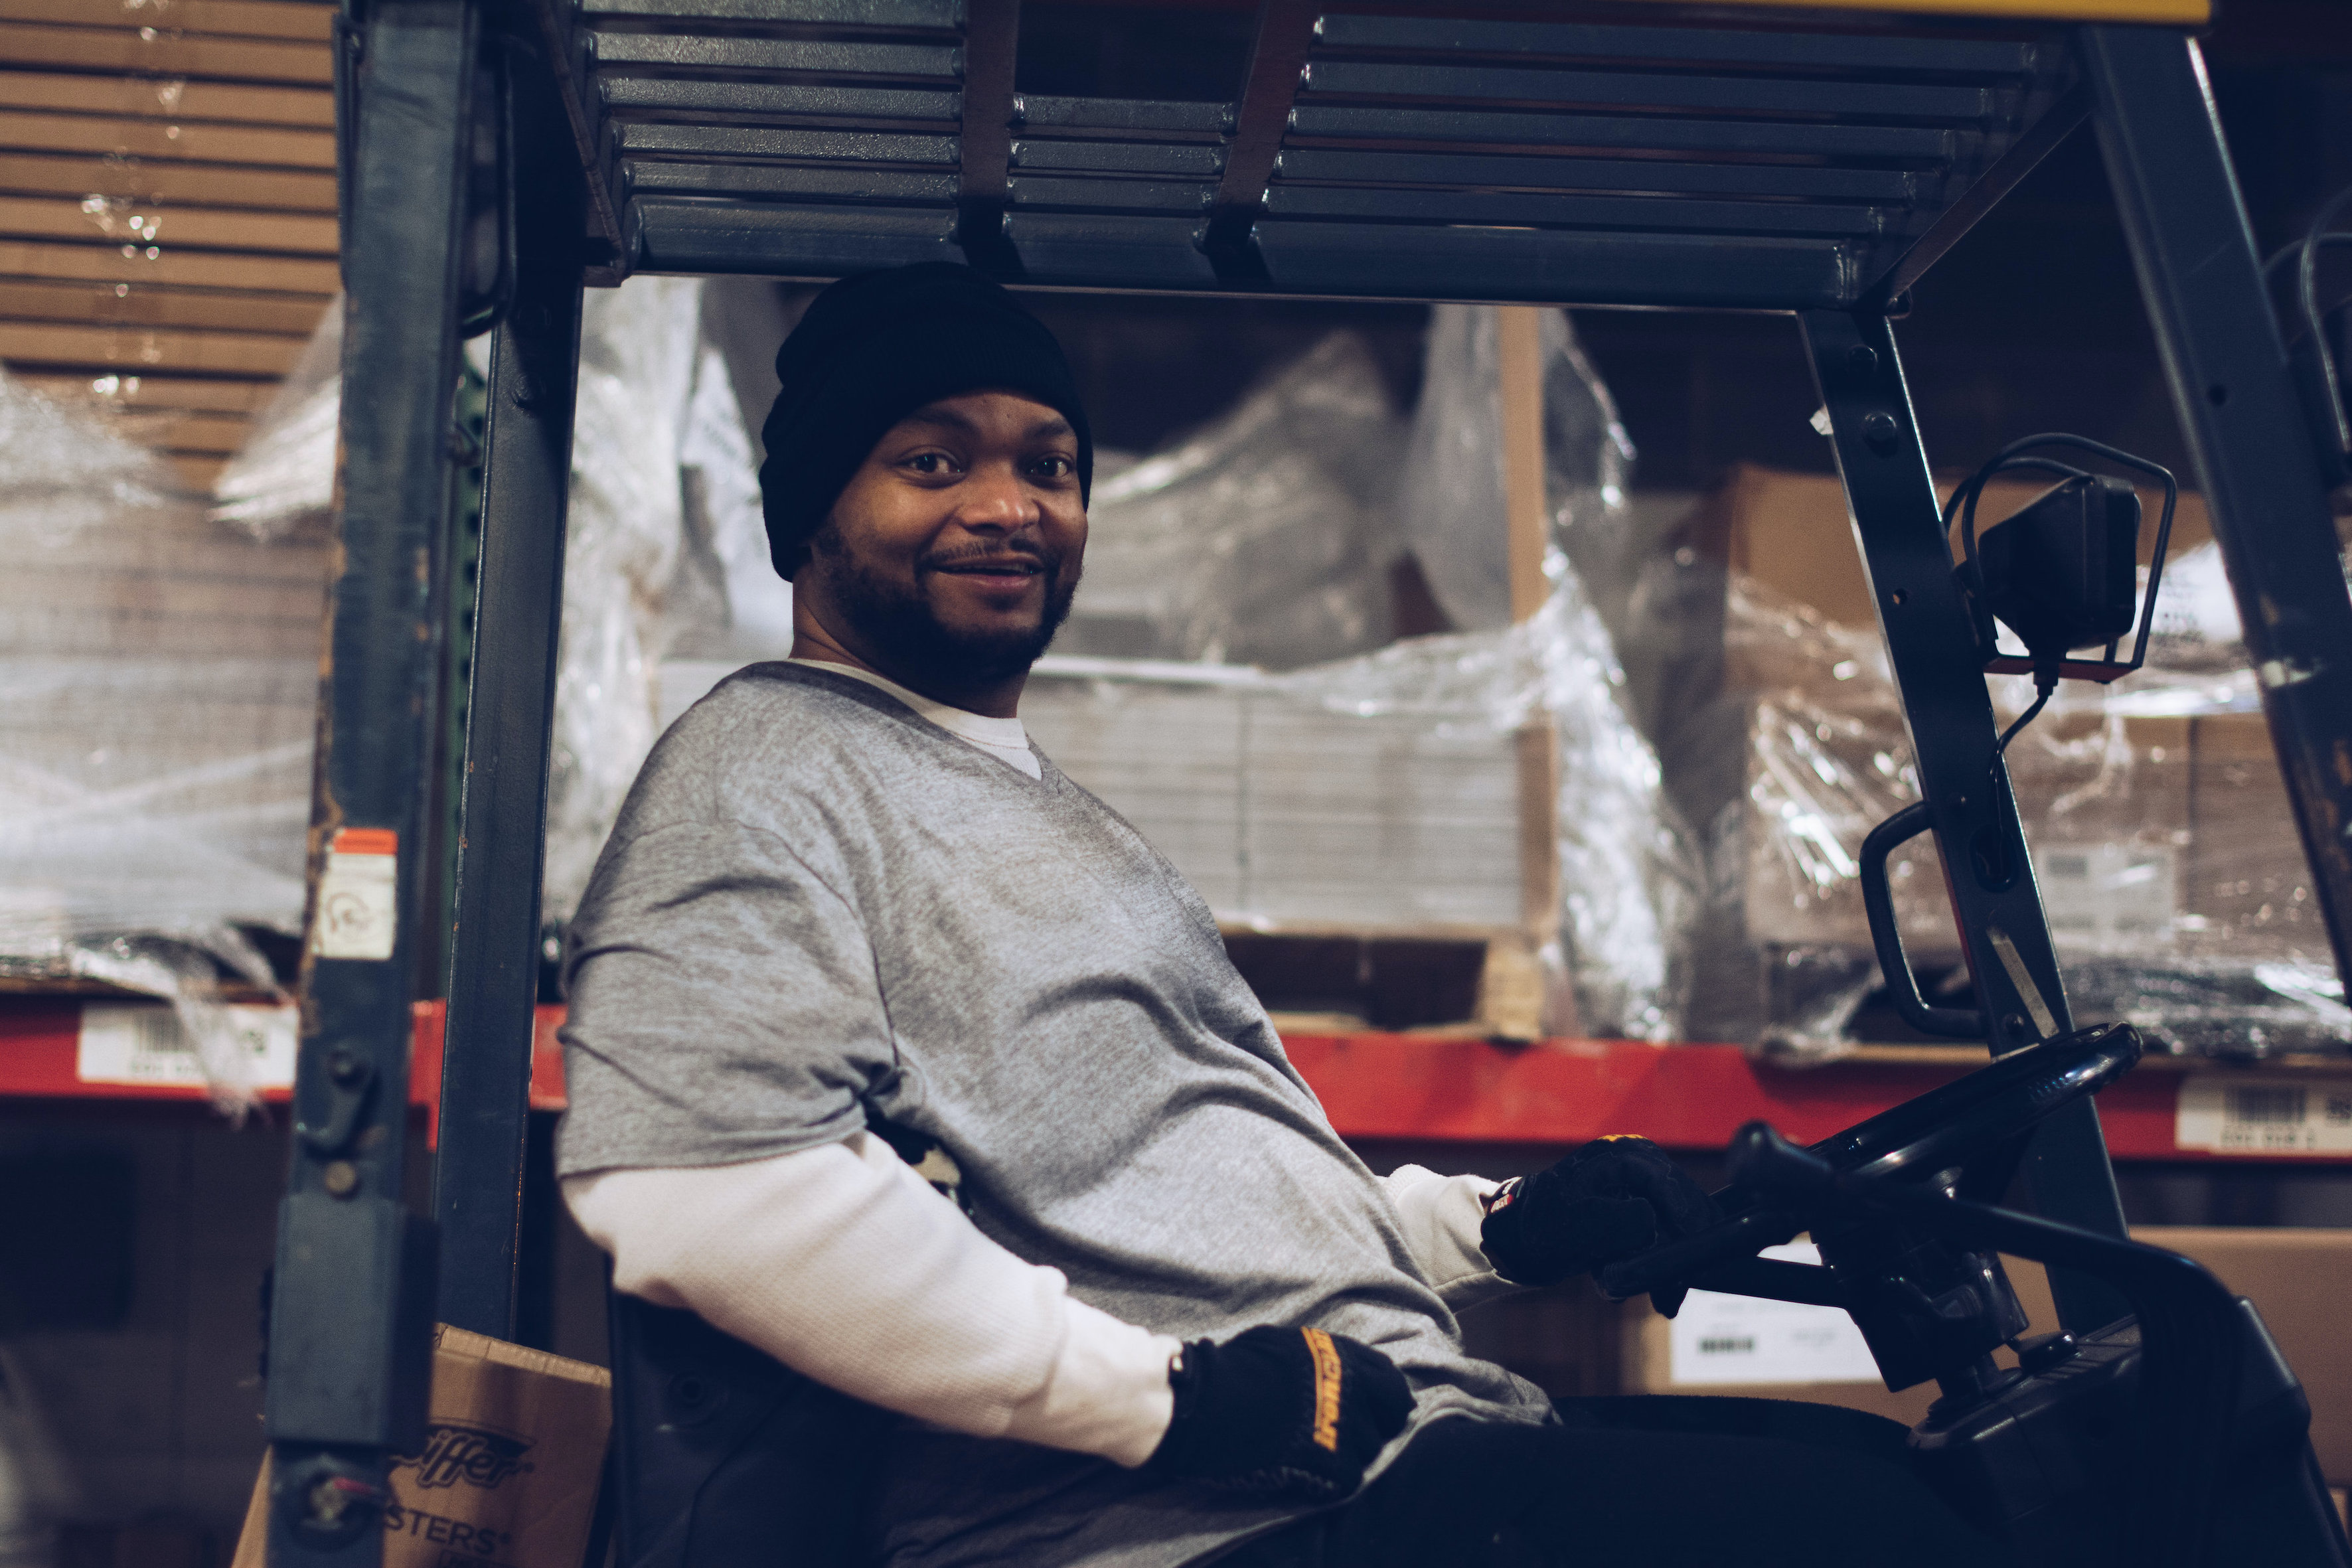 Man working in a warehouse supported by First Step Staffing. The non-profit helps people facing barriers to employment find jobs